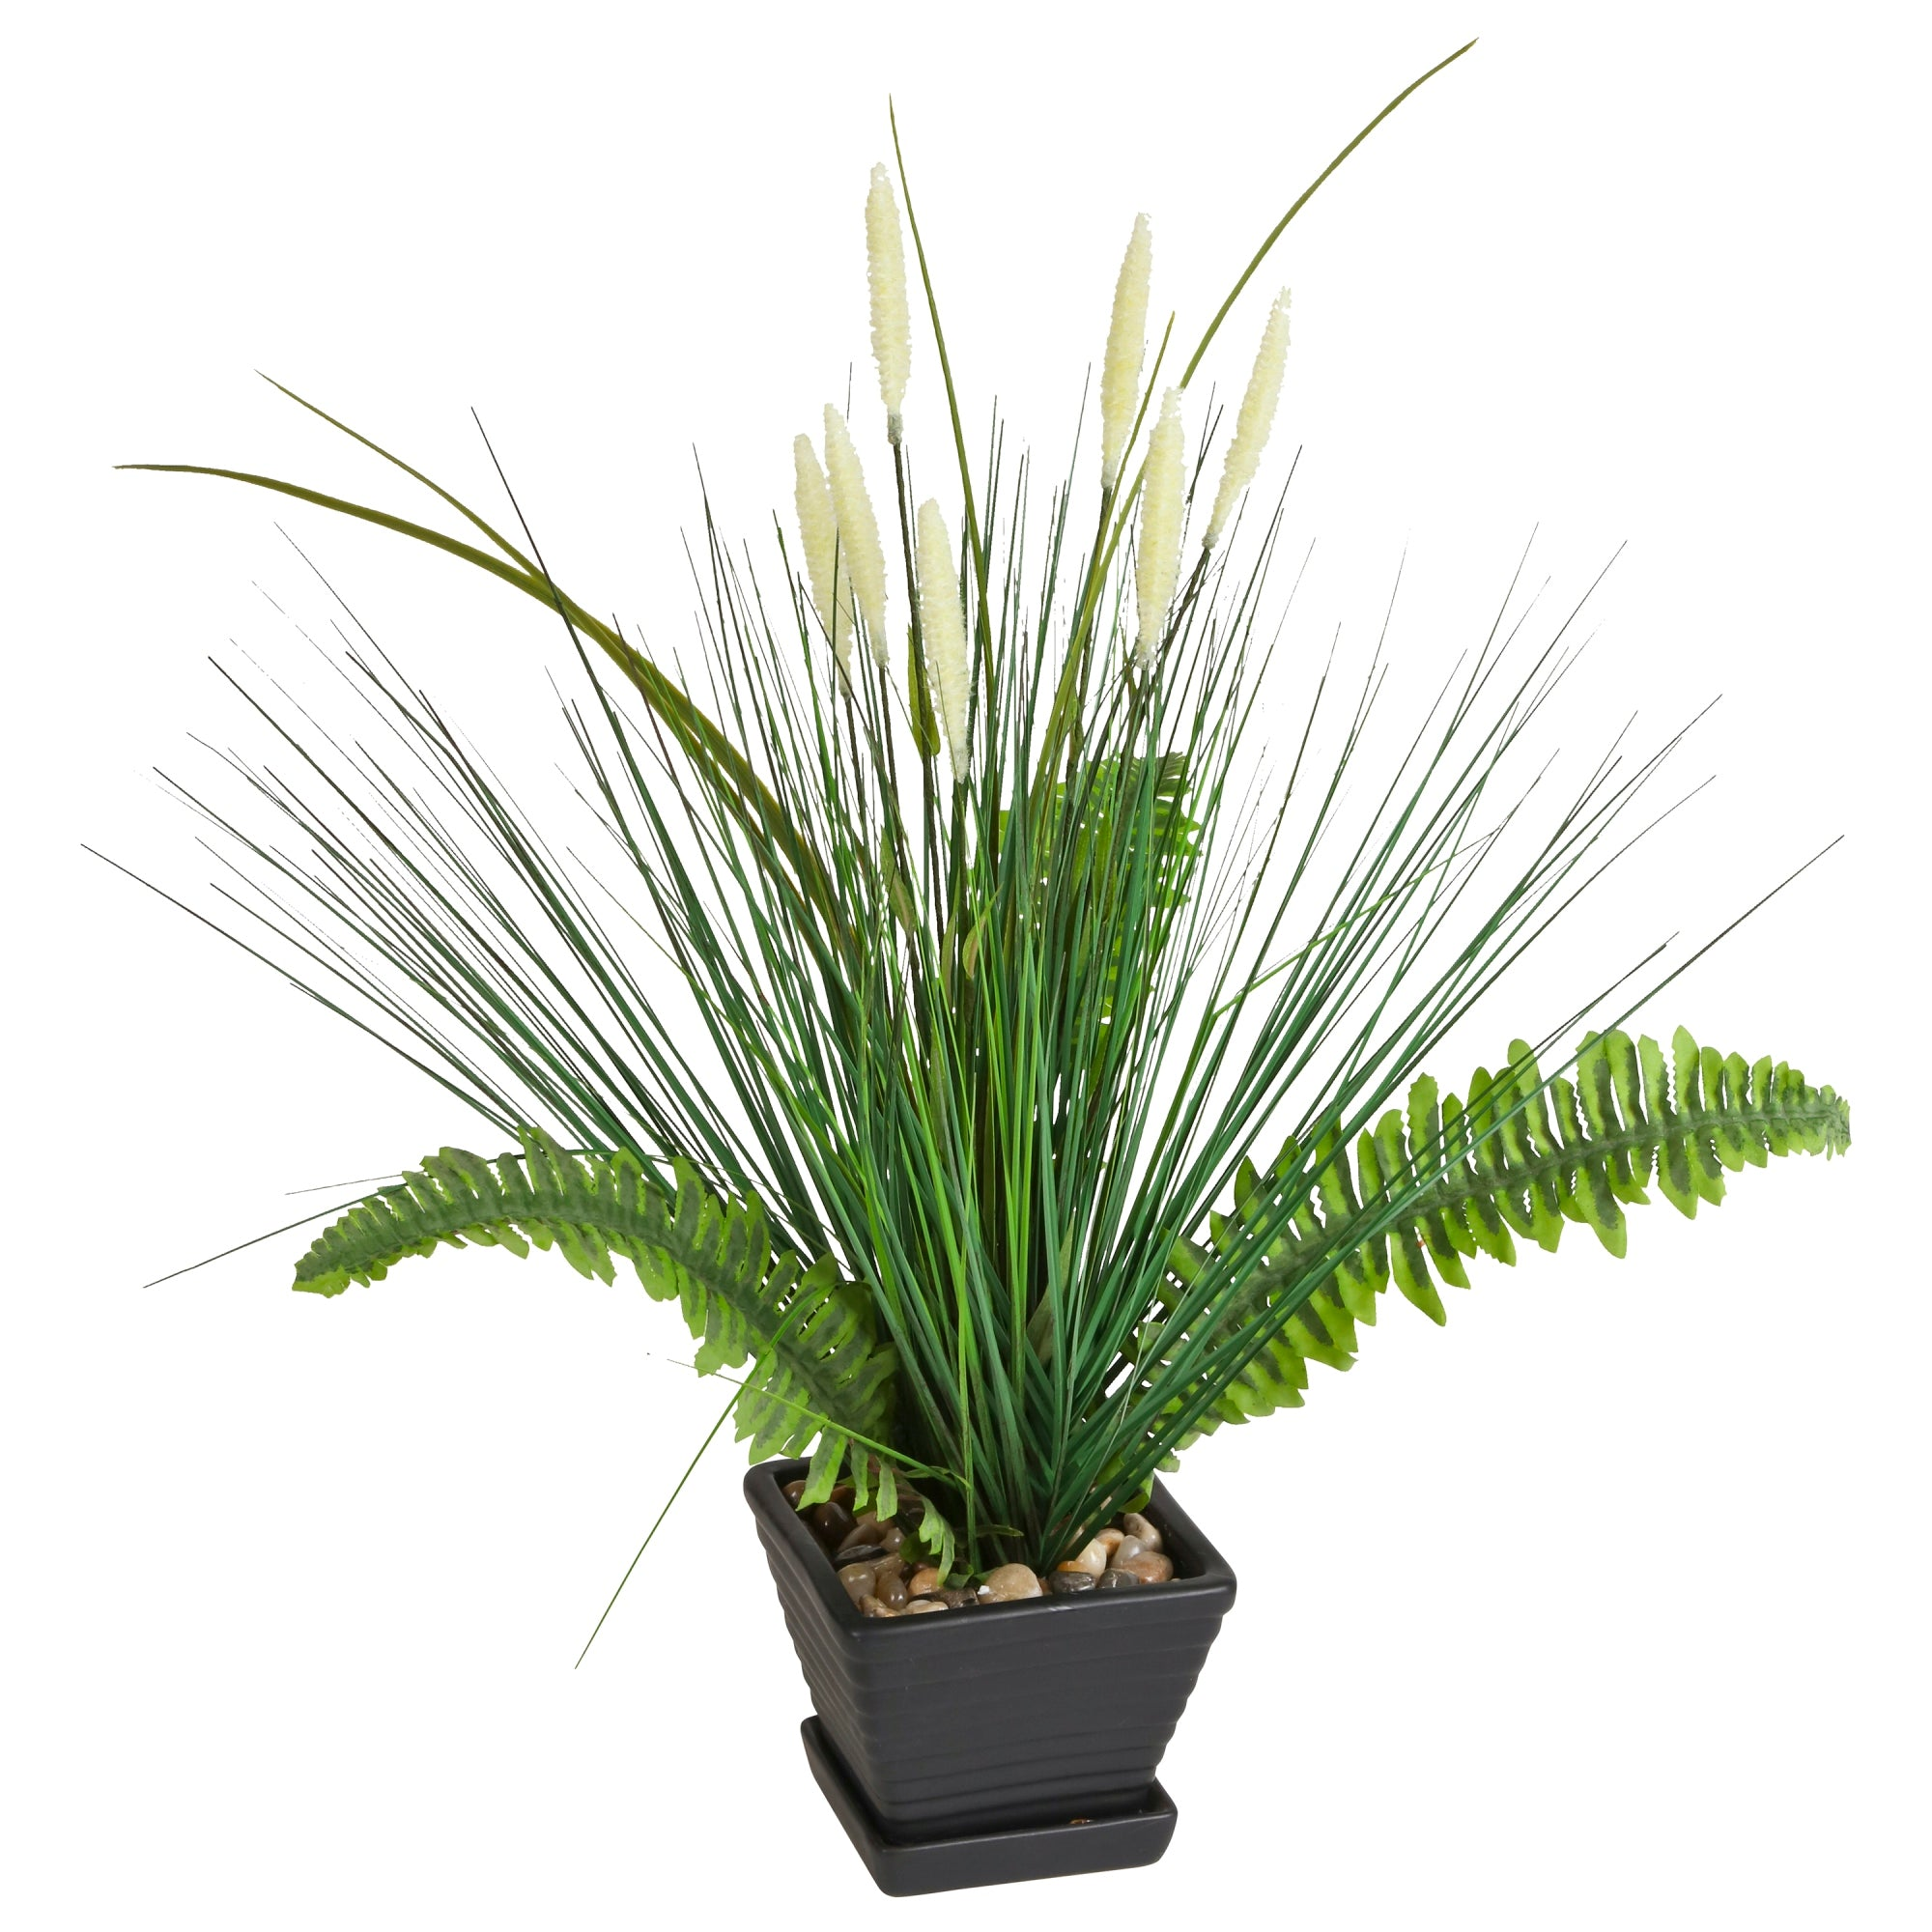 Breeze point p00013s 21 lifelike potted artificial fern and artificial fern and ornamental grass plant workwithnaturefo